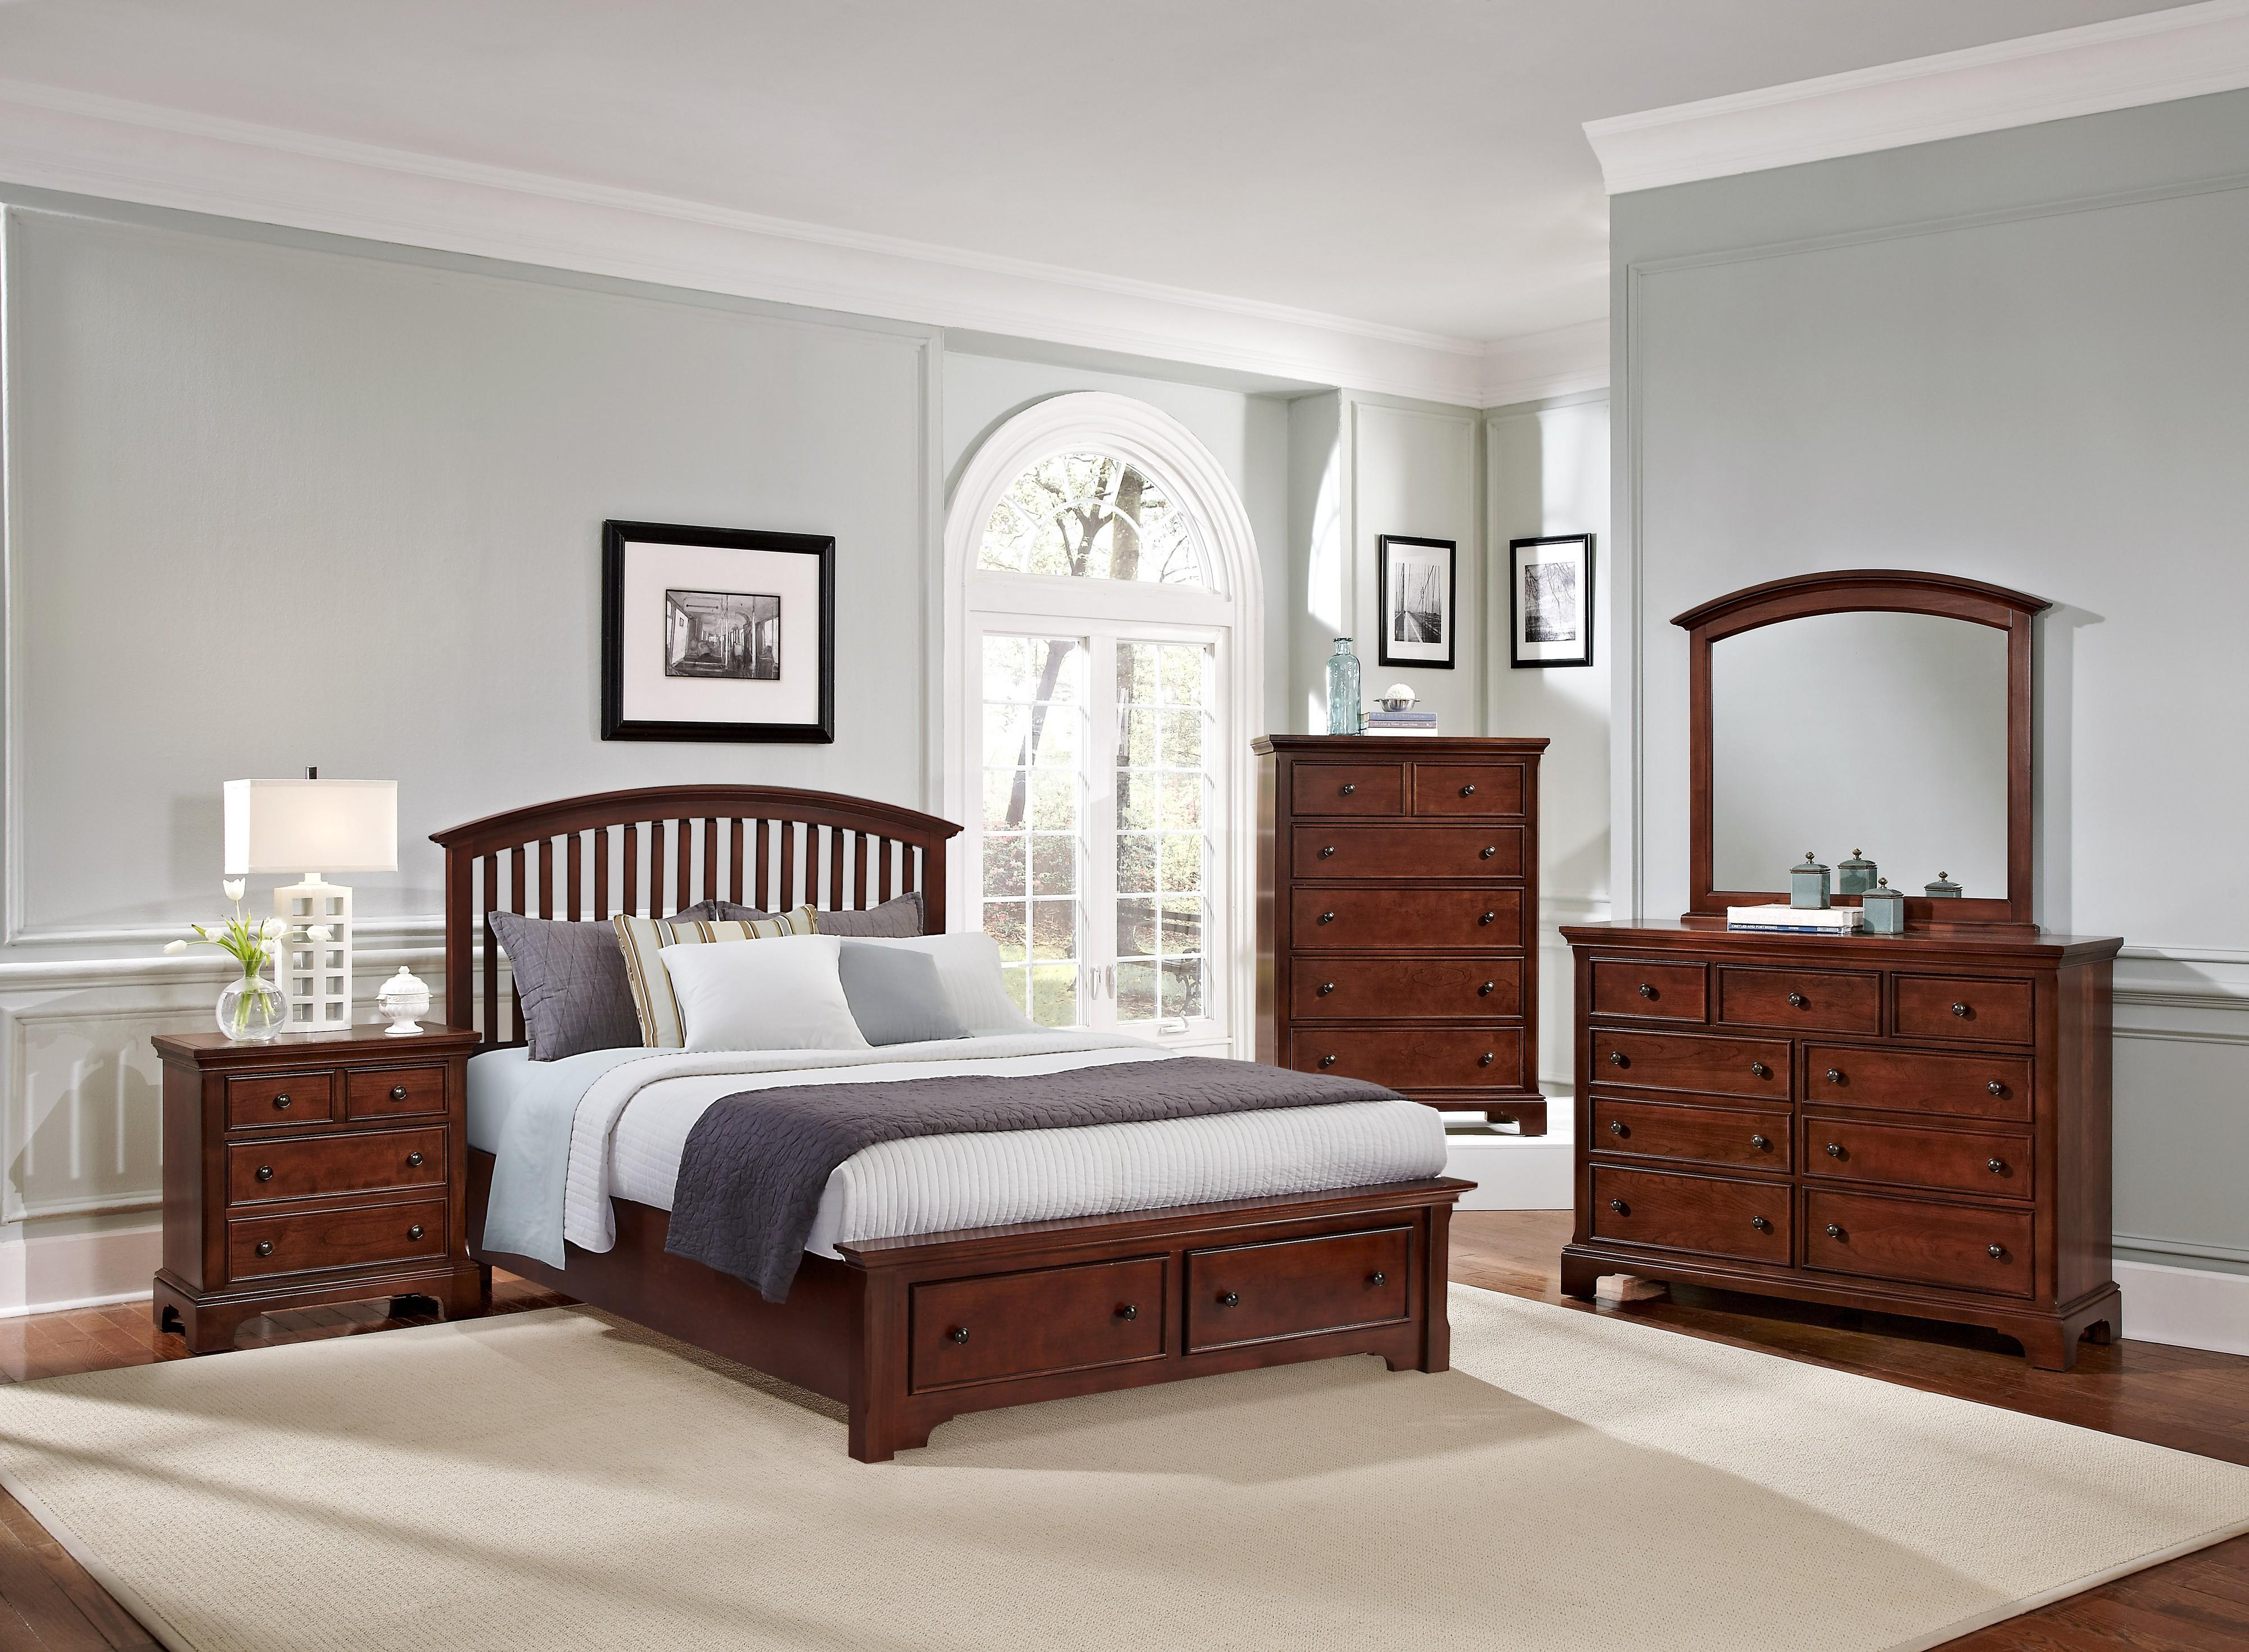 Vaughan Bassett Forsyth Queen Bedroom Group - Item Number: BB77 Q Bedroom Group 4